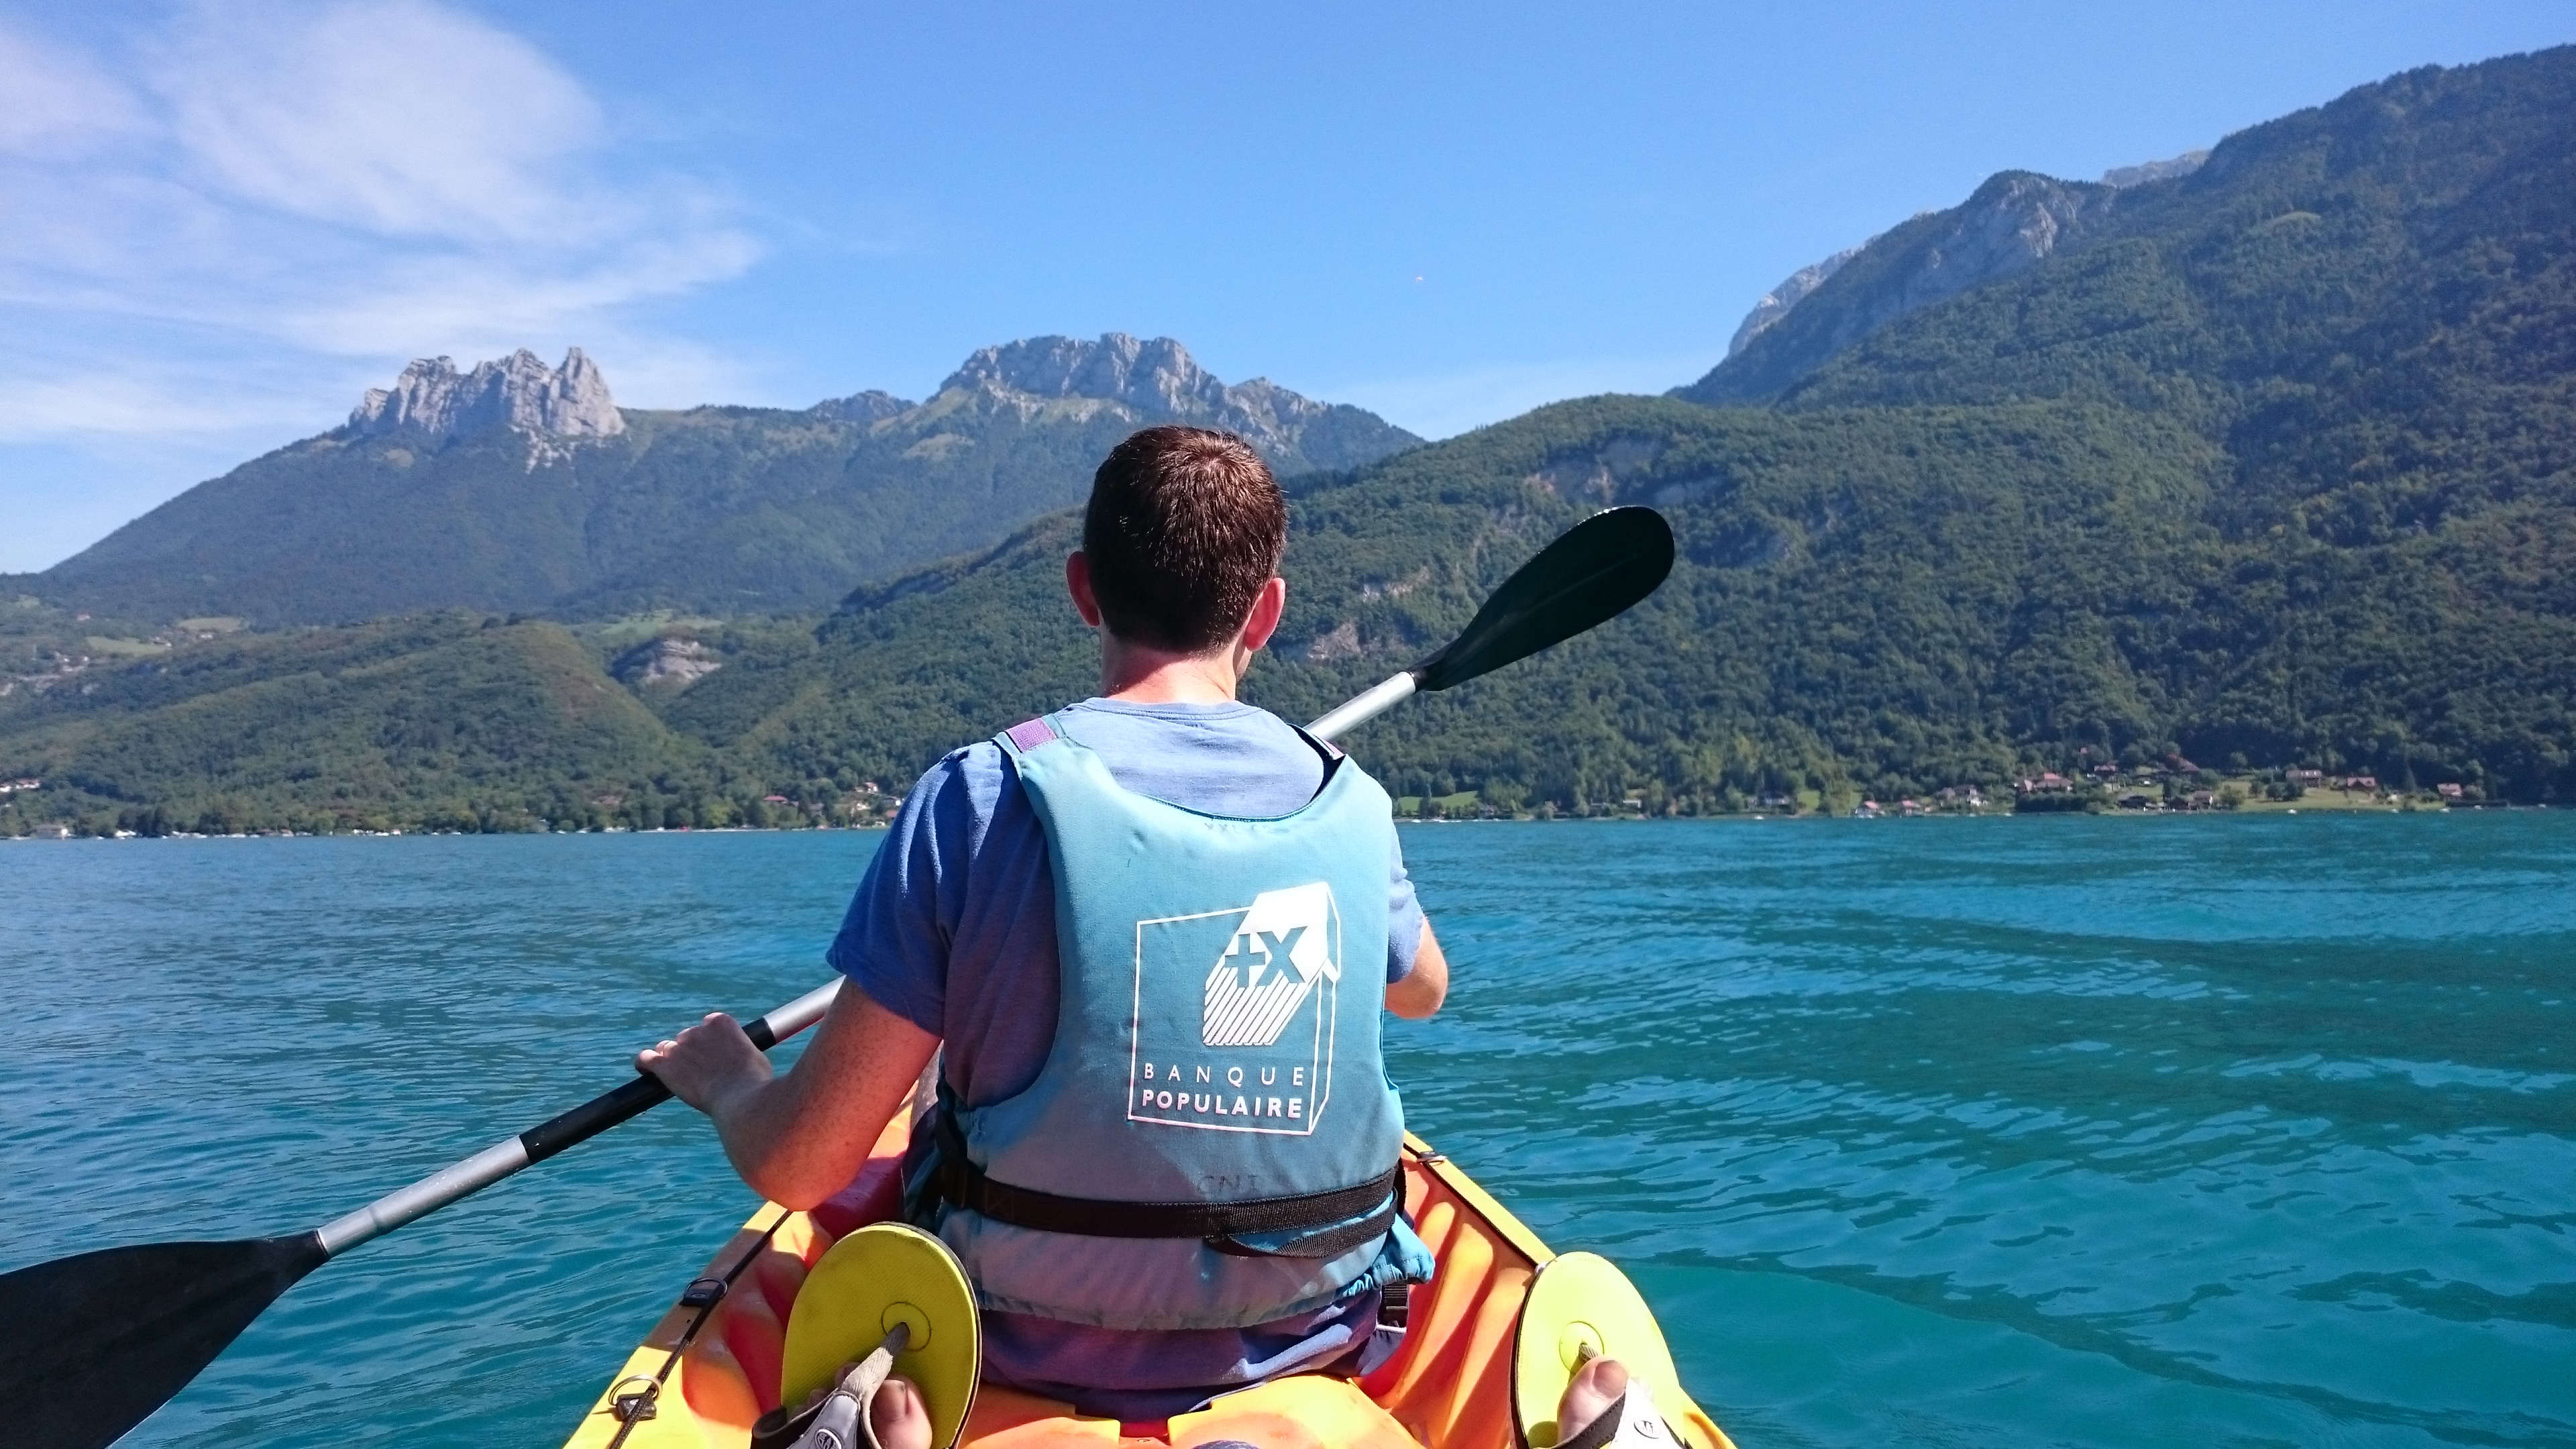 Paddling across Lake Annecy